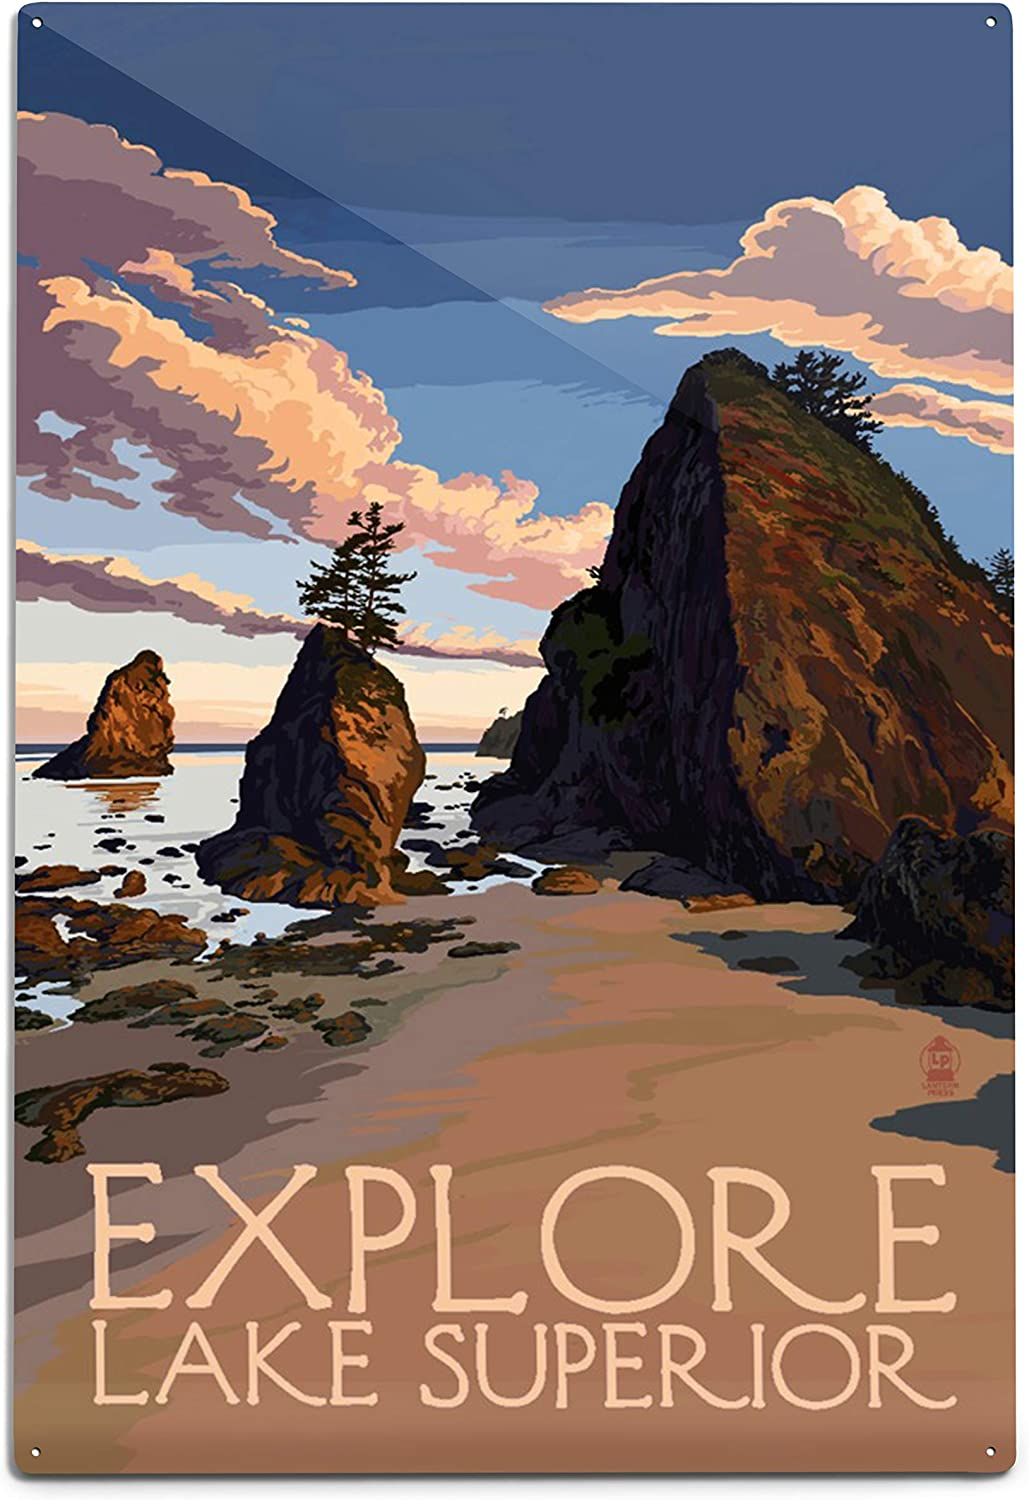 Explore Lake Superior - Rocky Shore 98539 (6x9 Aluminum Wall Sign, Wall Decor Ready to Hang)